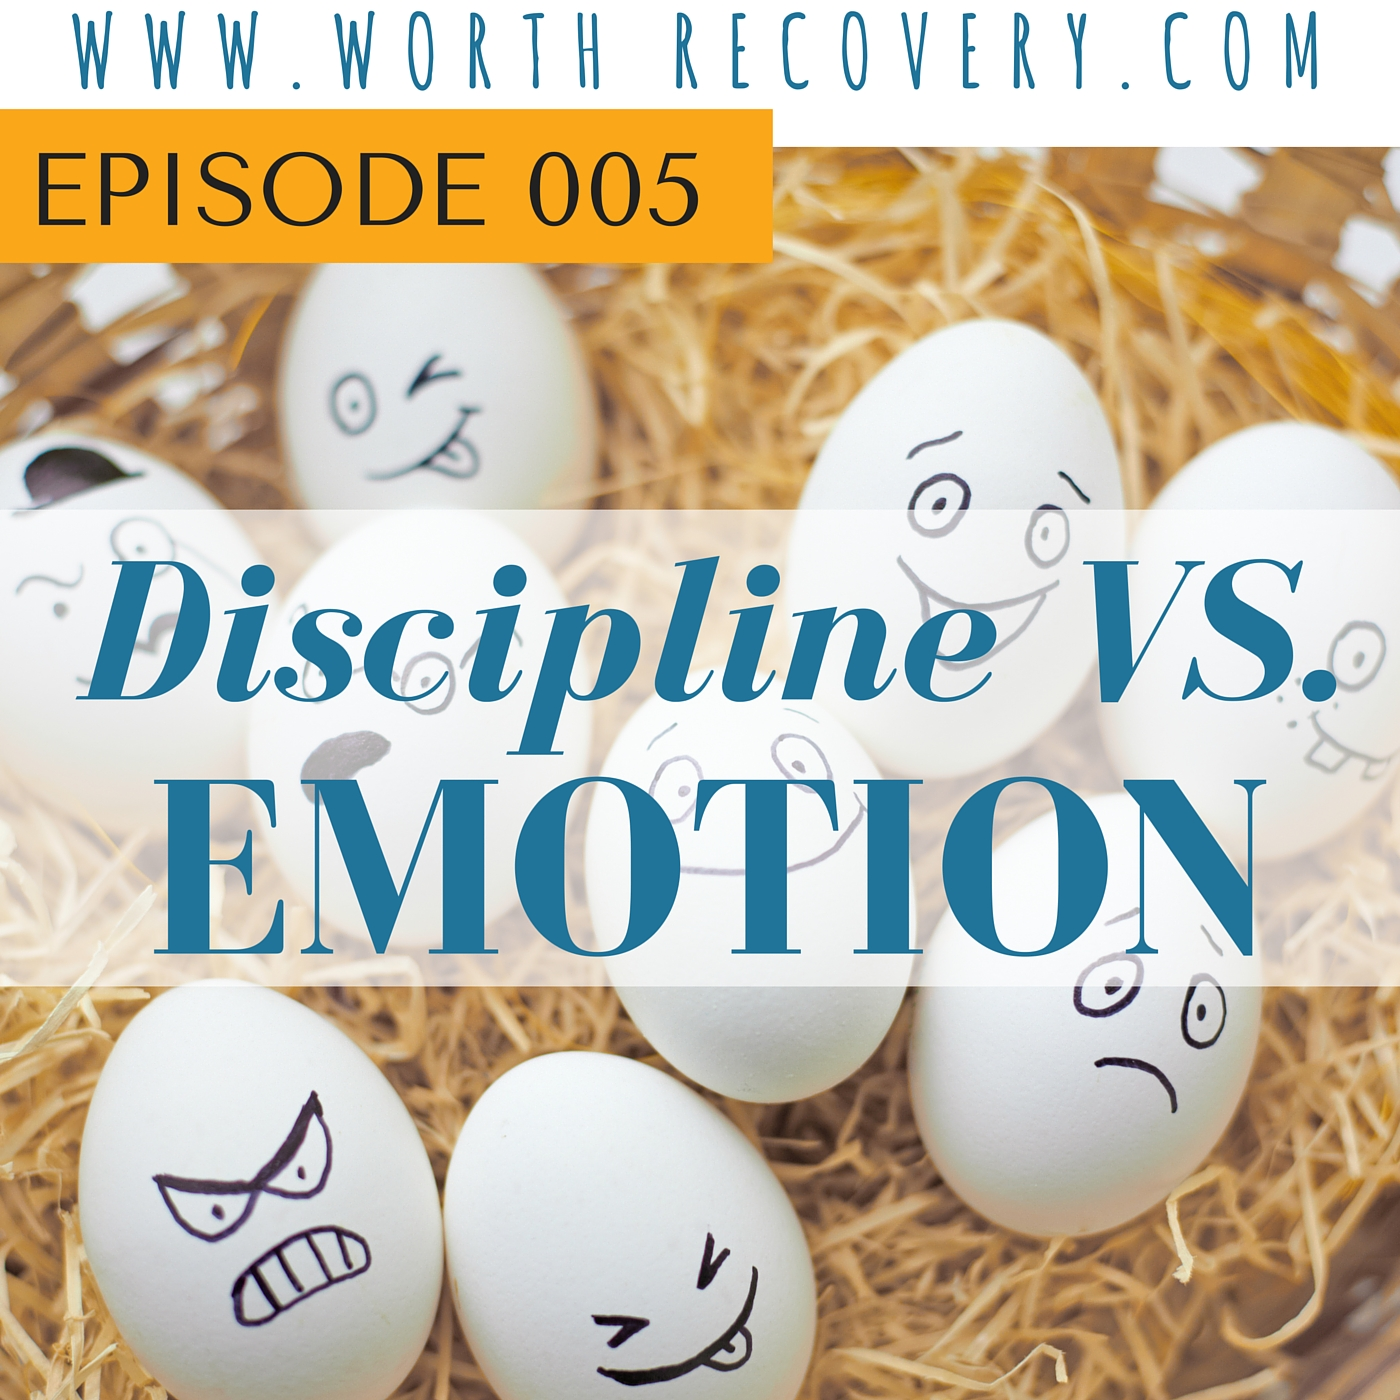 Episode 005: Discipline Vs. Emotion